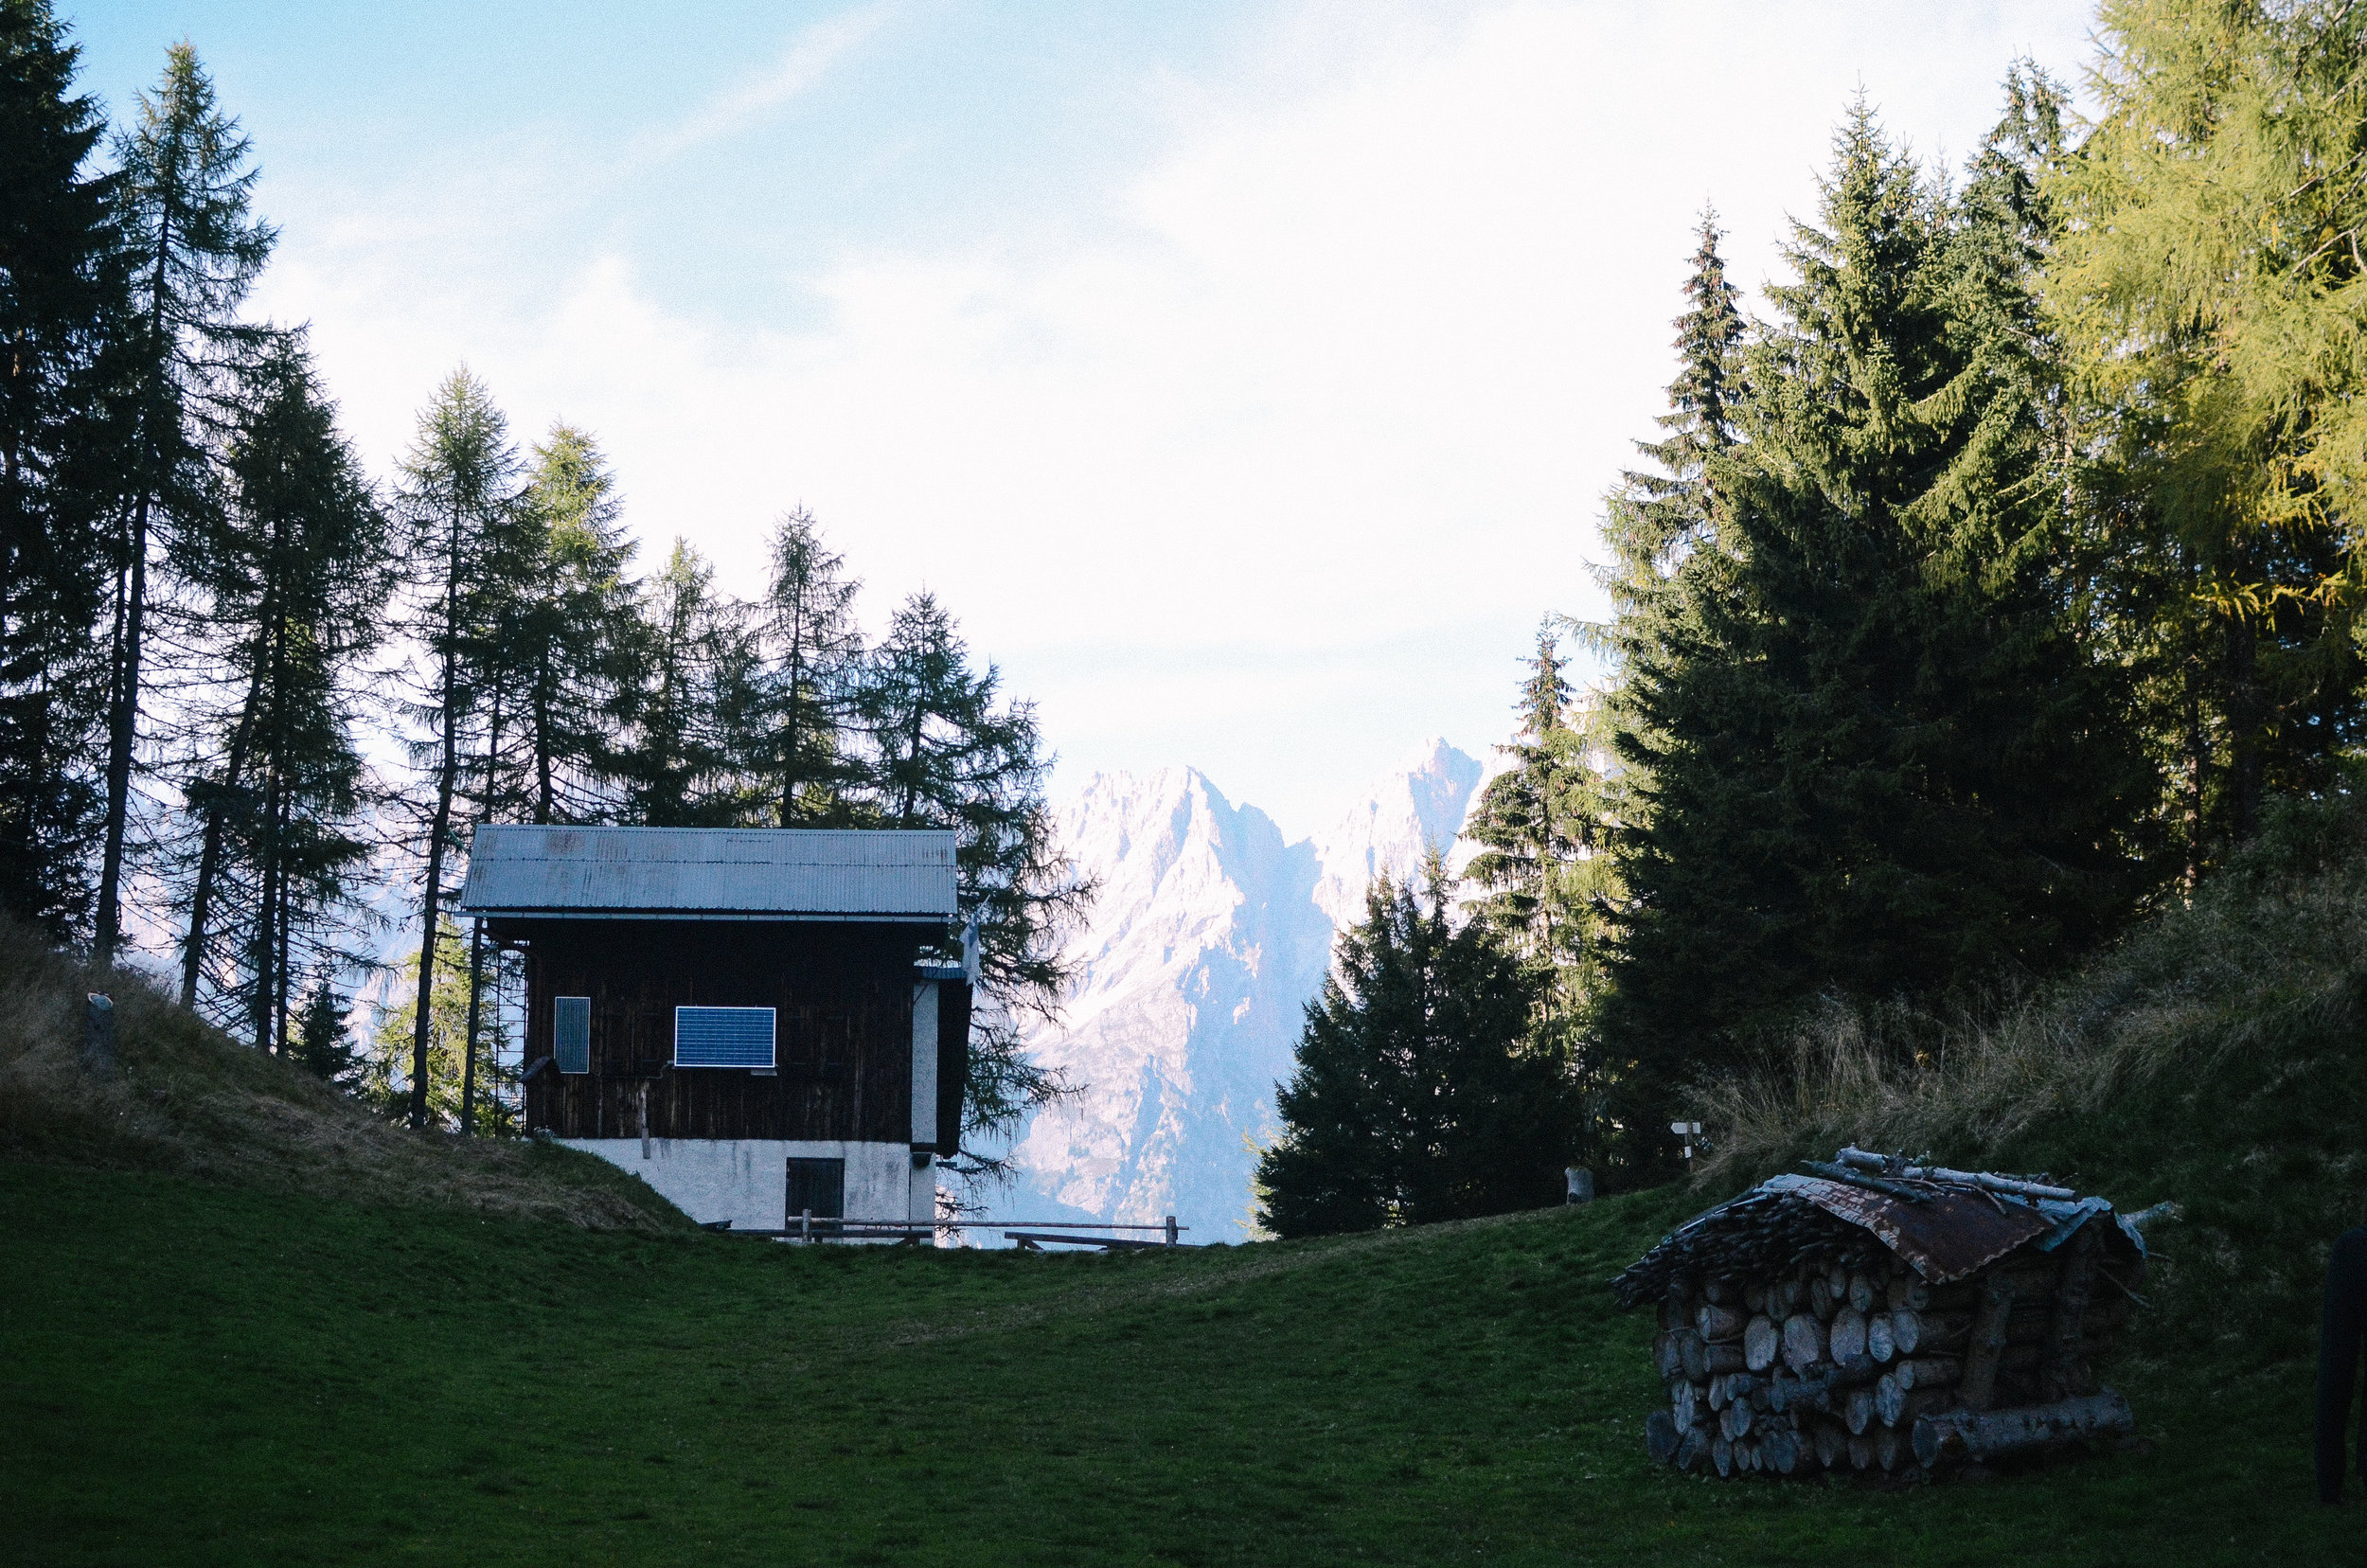 dolomites-why-the-italian-alps-should-be-your-next-mountain-adventure- travel-blog-10.jpg